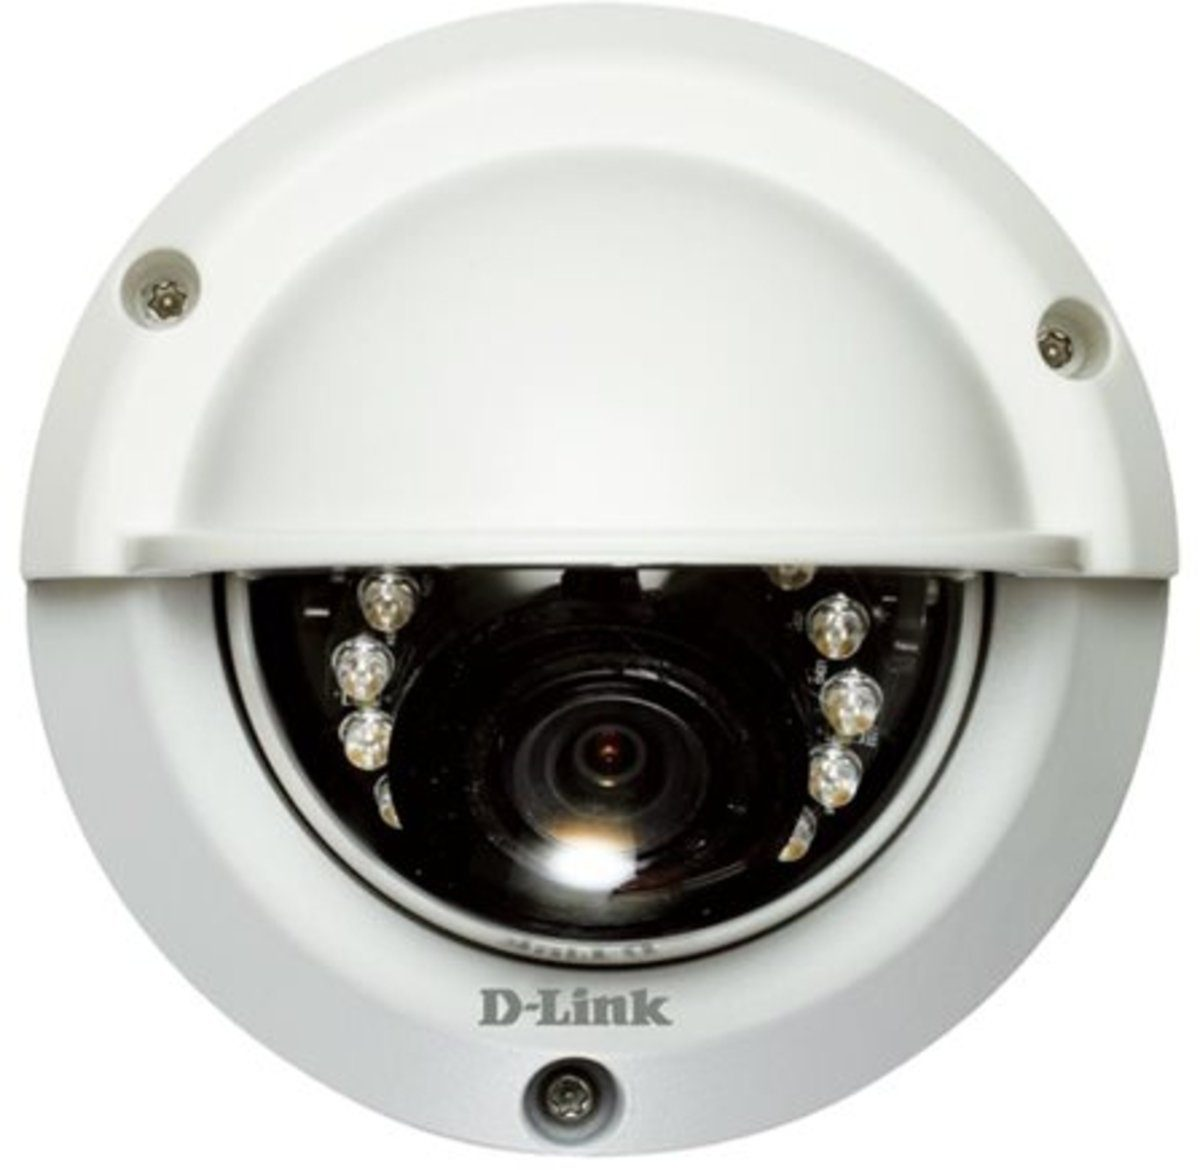 D-Link IP-Kamera »DCS-6314 PoE Mini Dome WDR FullHD Outdoor IP Cam«